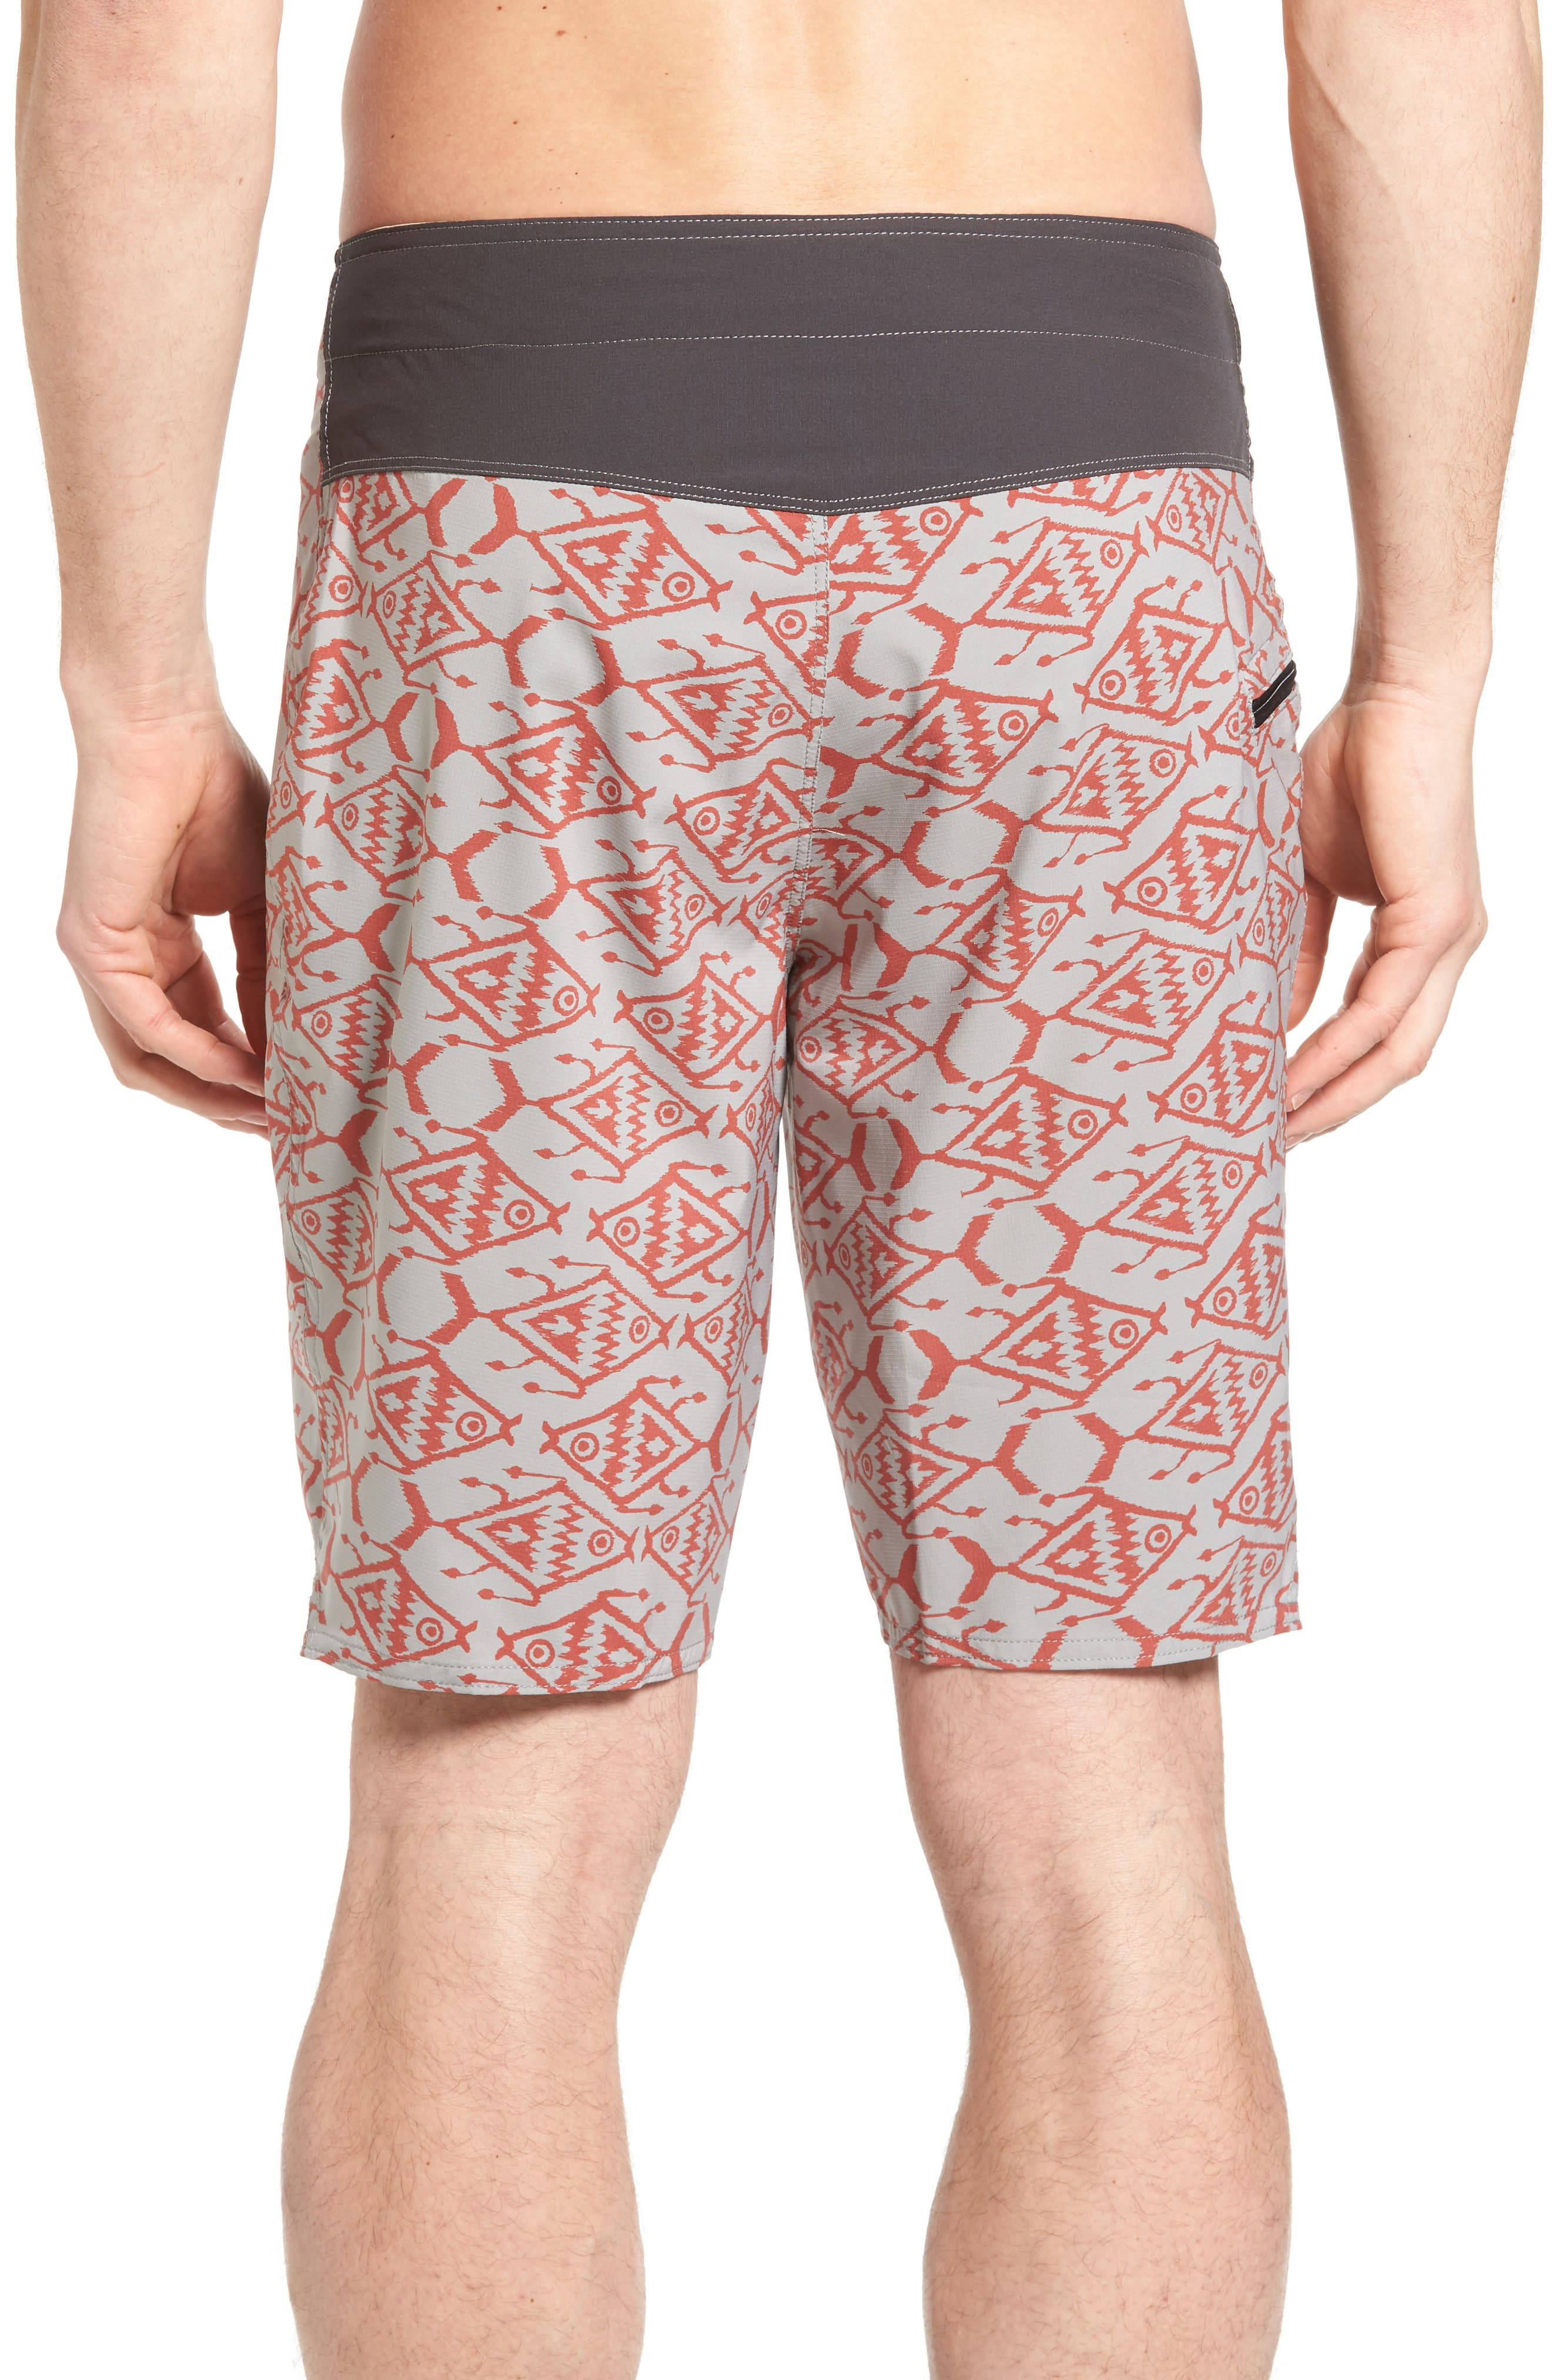 Stretch Planing Board Shorts,                             Alternate thumbnail 2, color,                             Spiced Coral